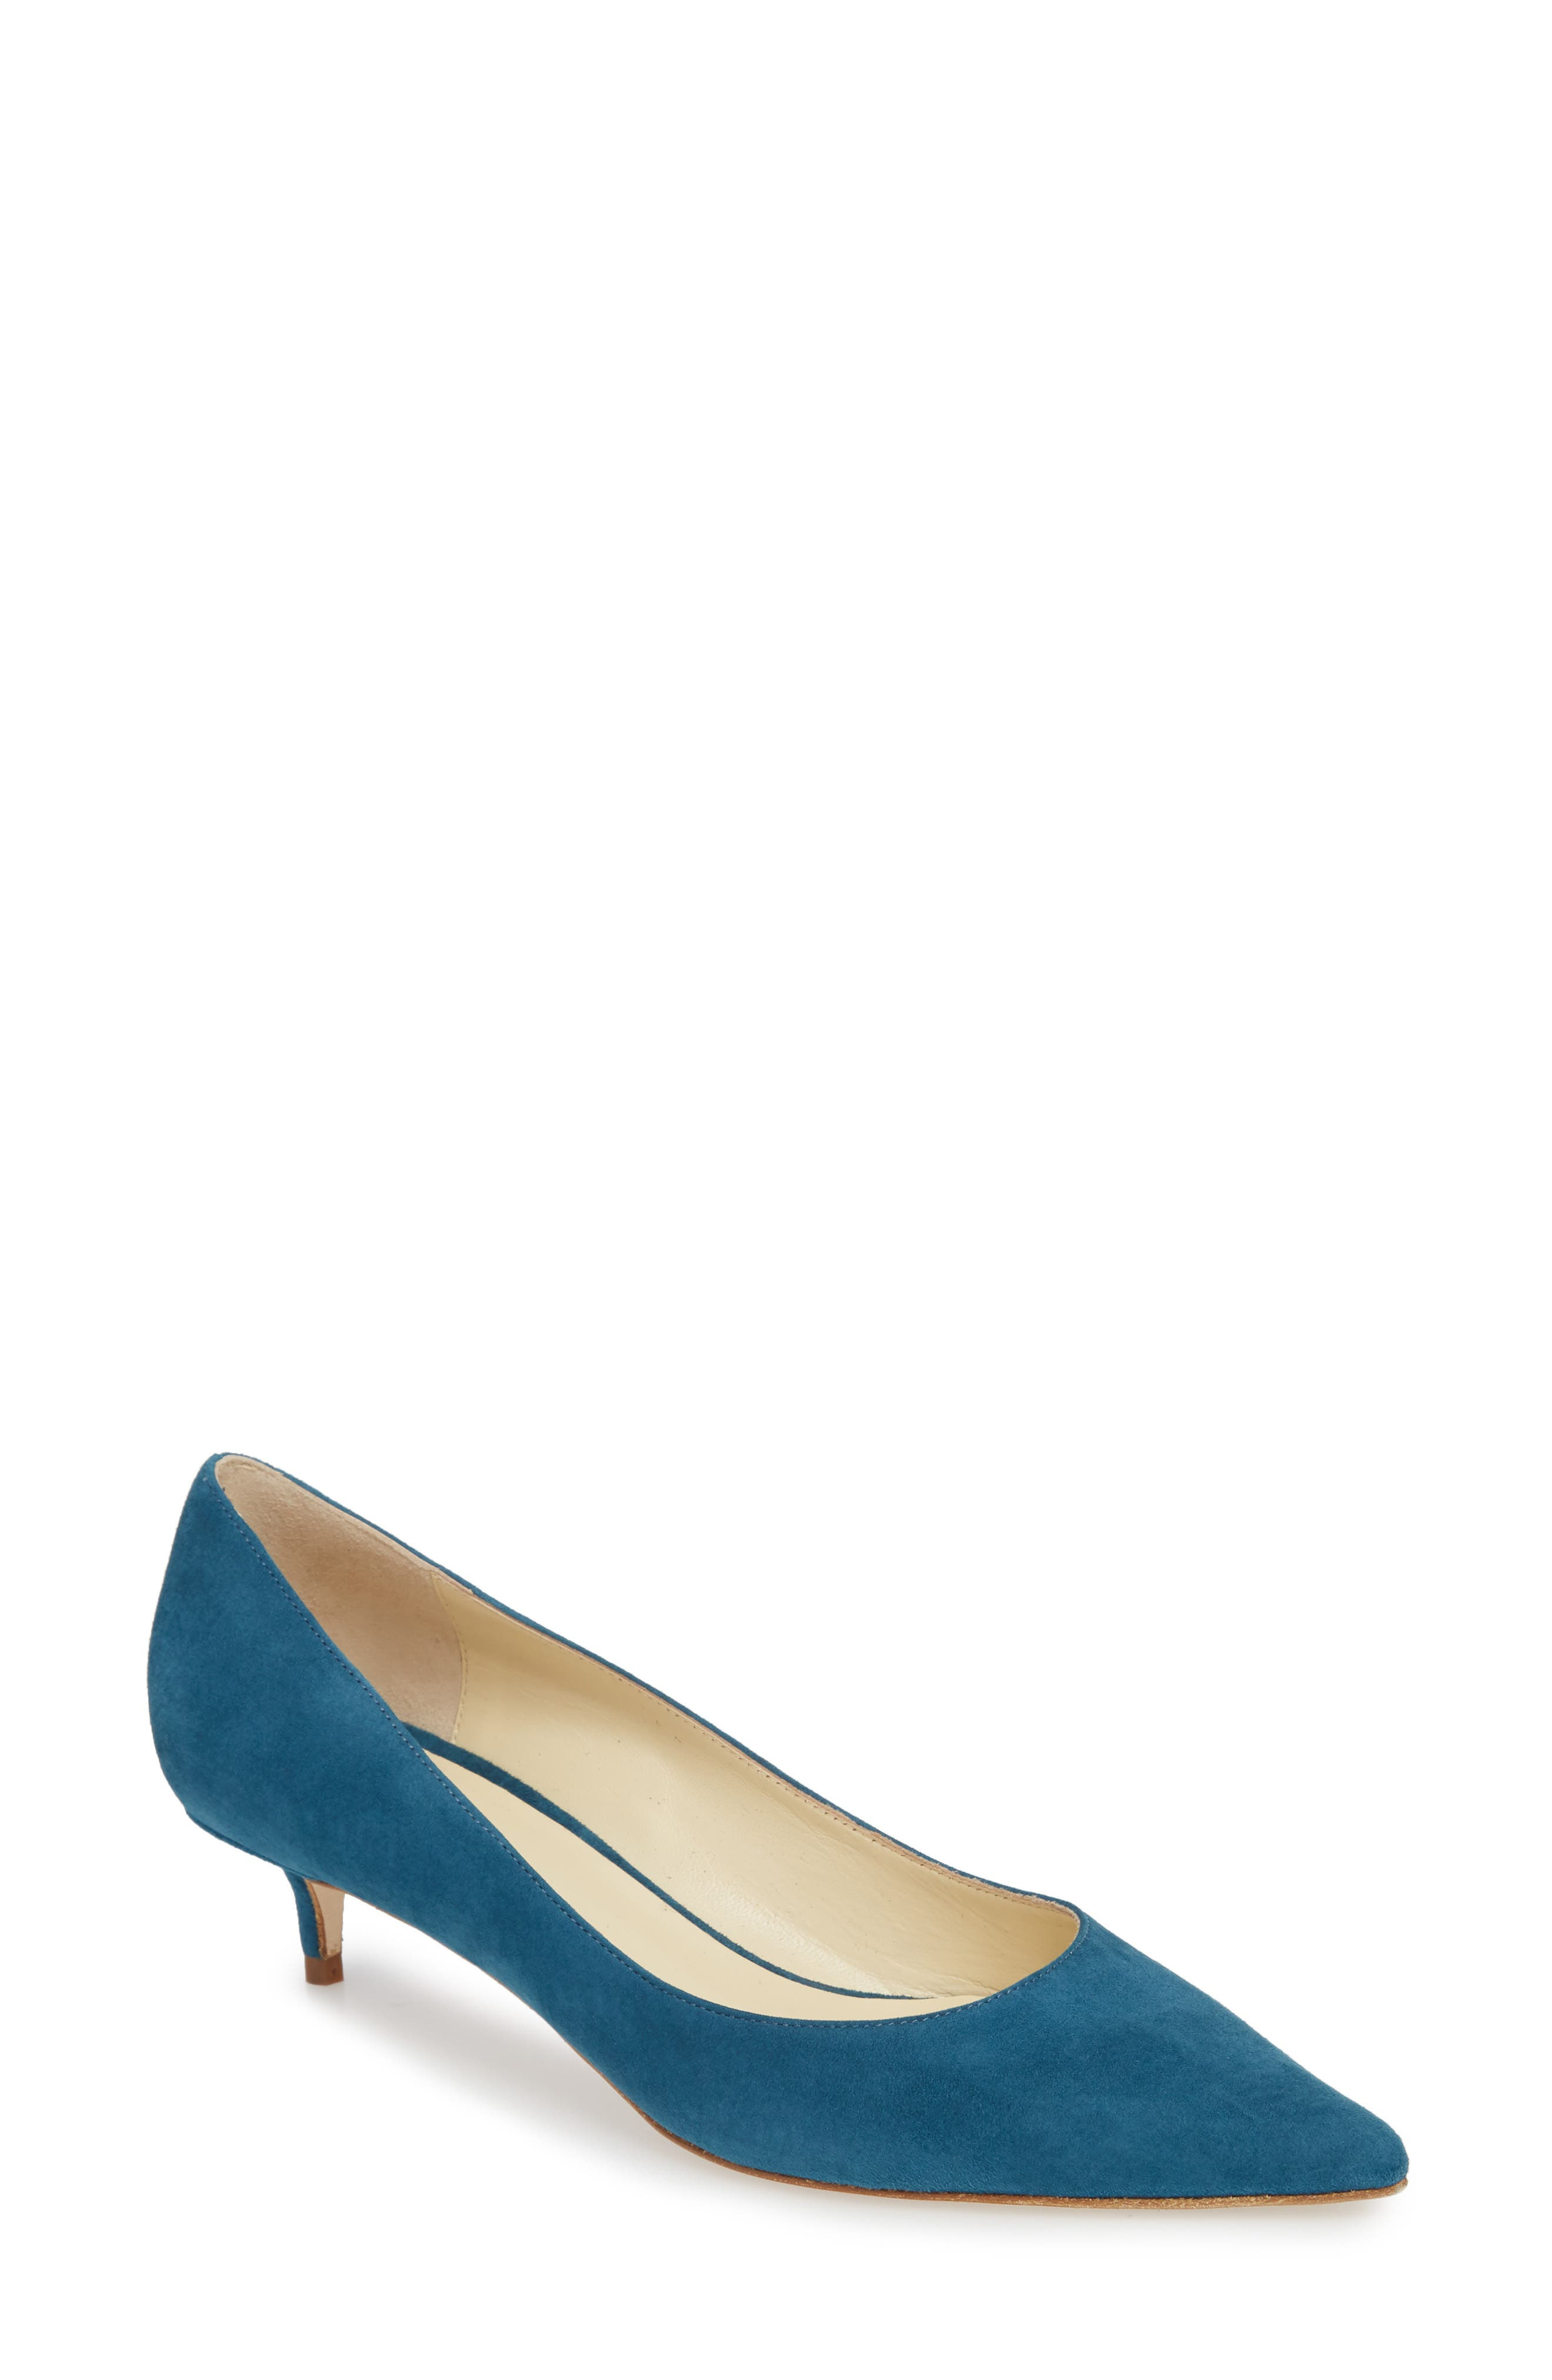 Butter Shoes Women's Butter Born Pointy Toe Pump 67icq